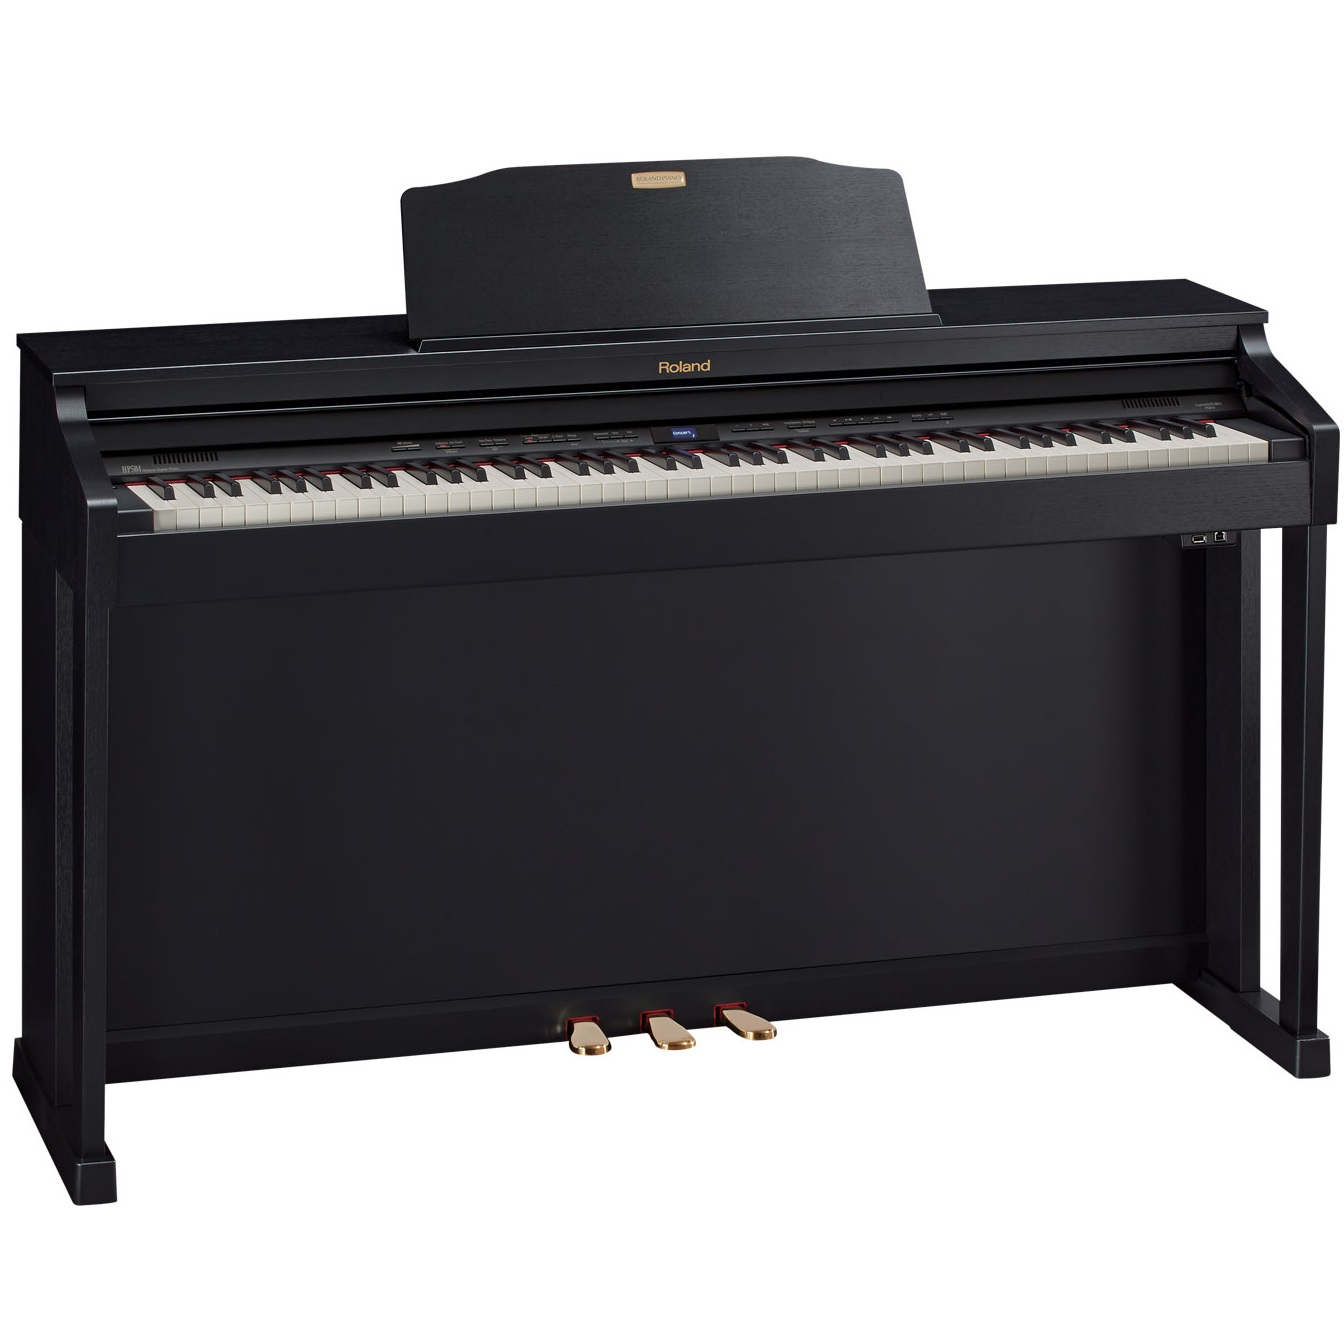 Piano Điện Roland HP-504